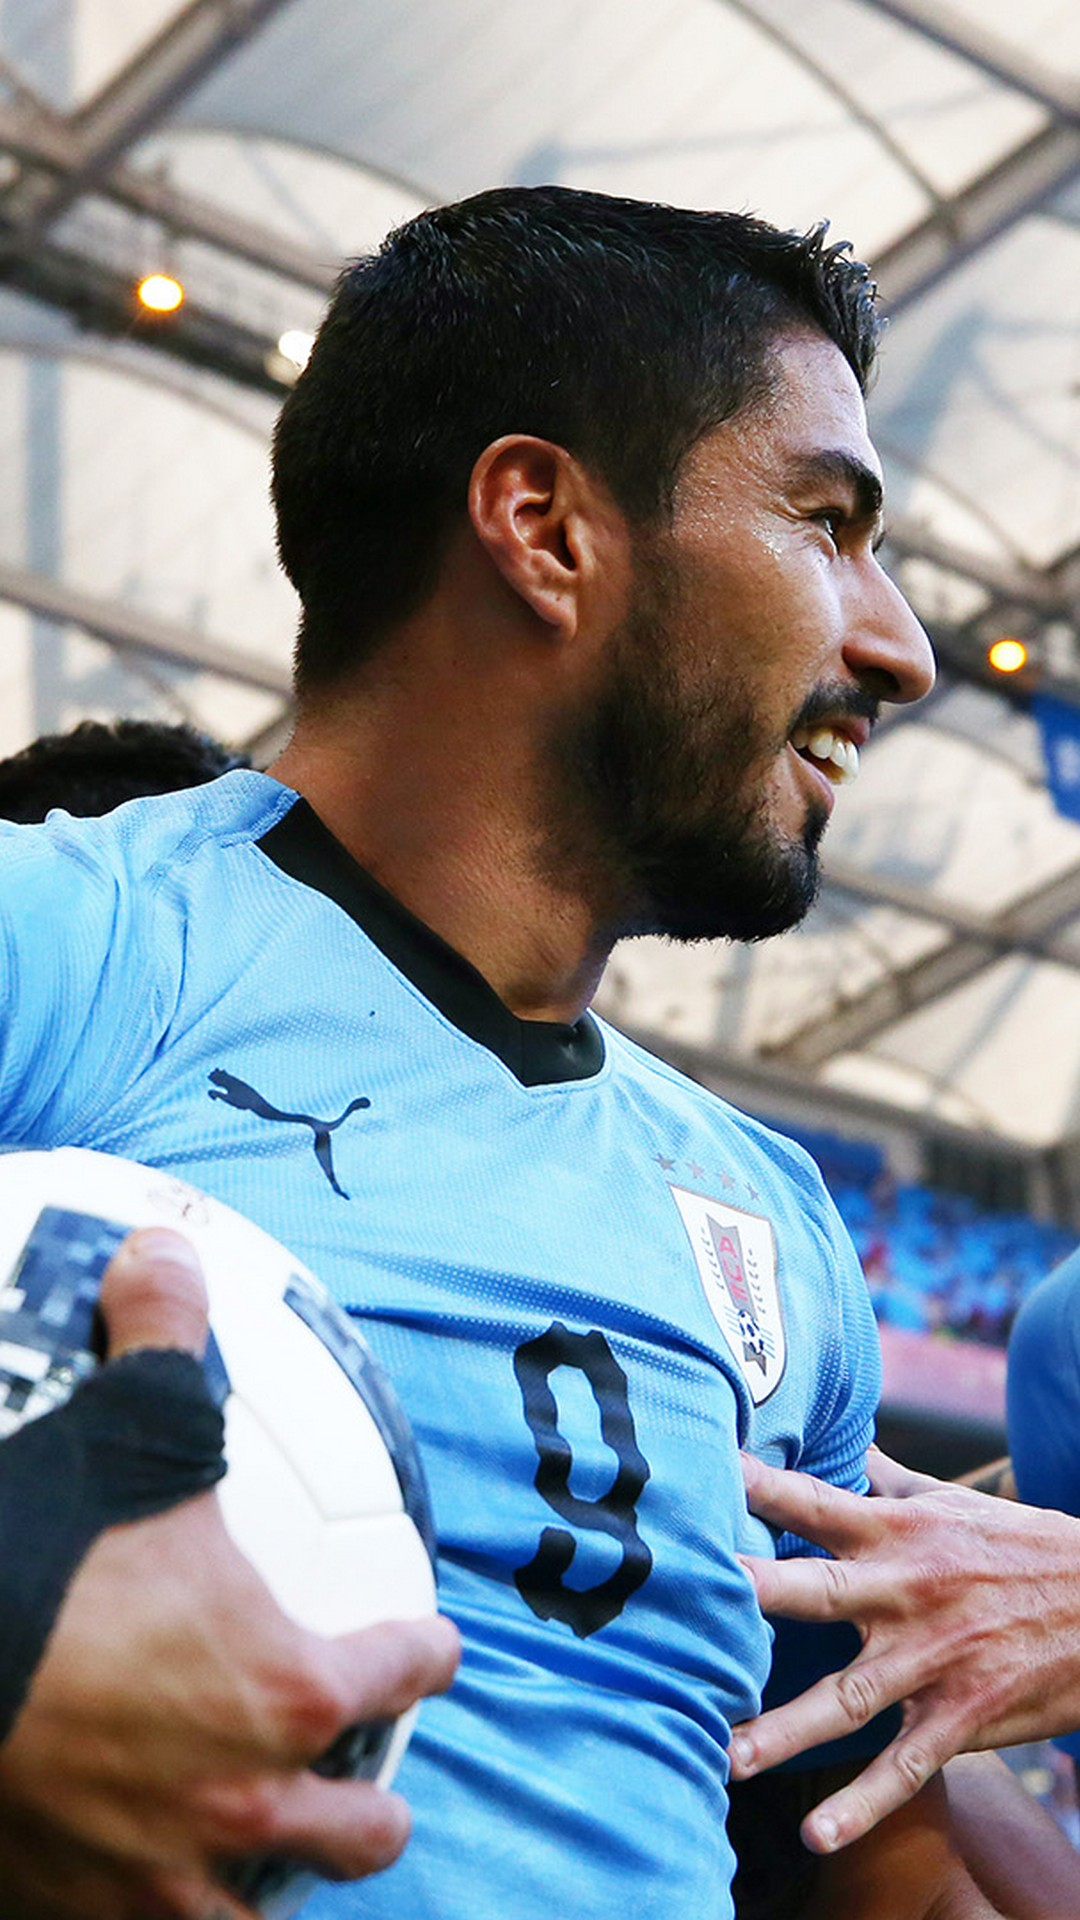 iPhone X Wallpaper Luis Suarez Uruguay 2019 3D iPhone Wallpaper 1080x1920